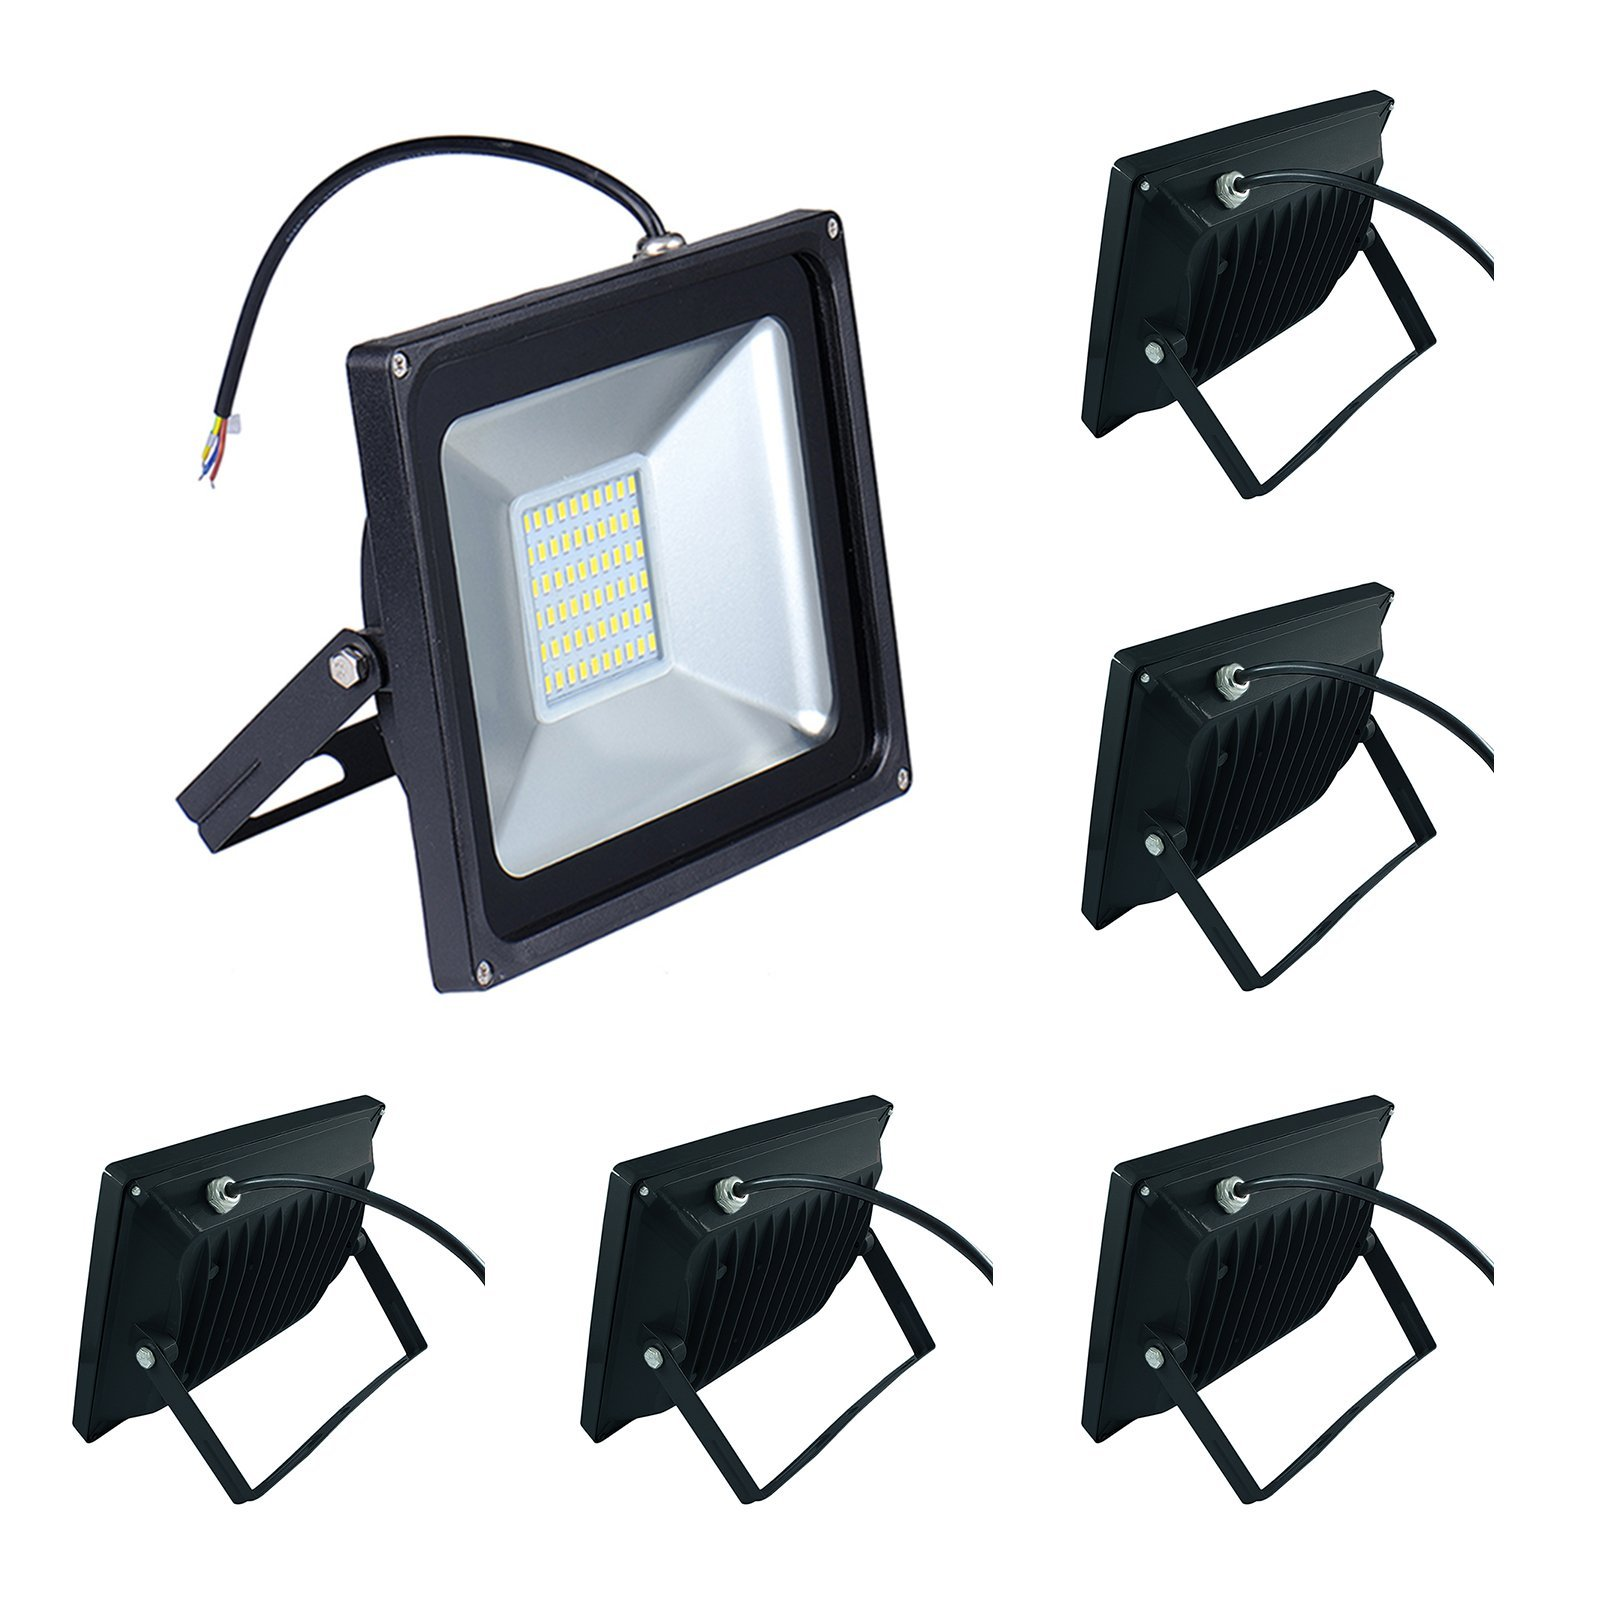 6-Pack 50W LED Floodlight,Low-energy Warm White Spotlight,IP65 Waterproof Outdoor&Indoor Security Flood Light Landscape Lamp